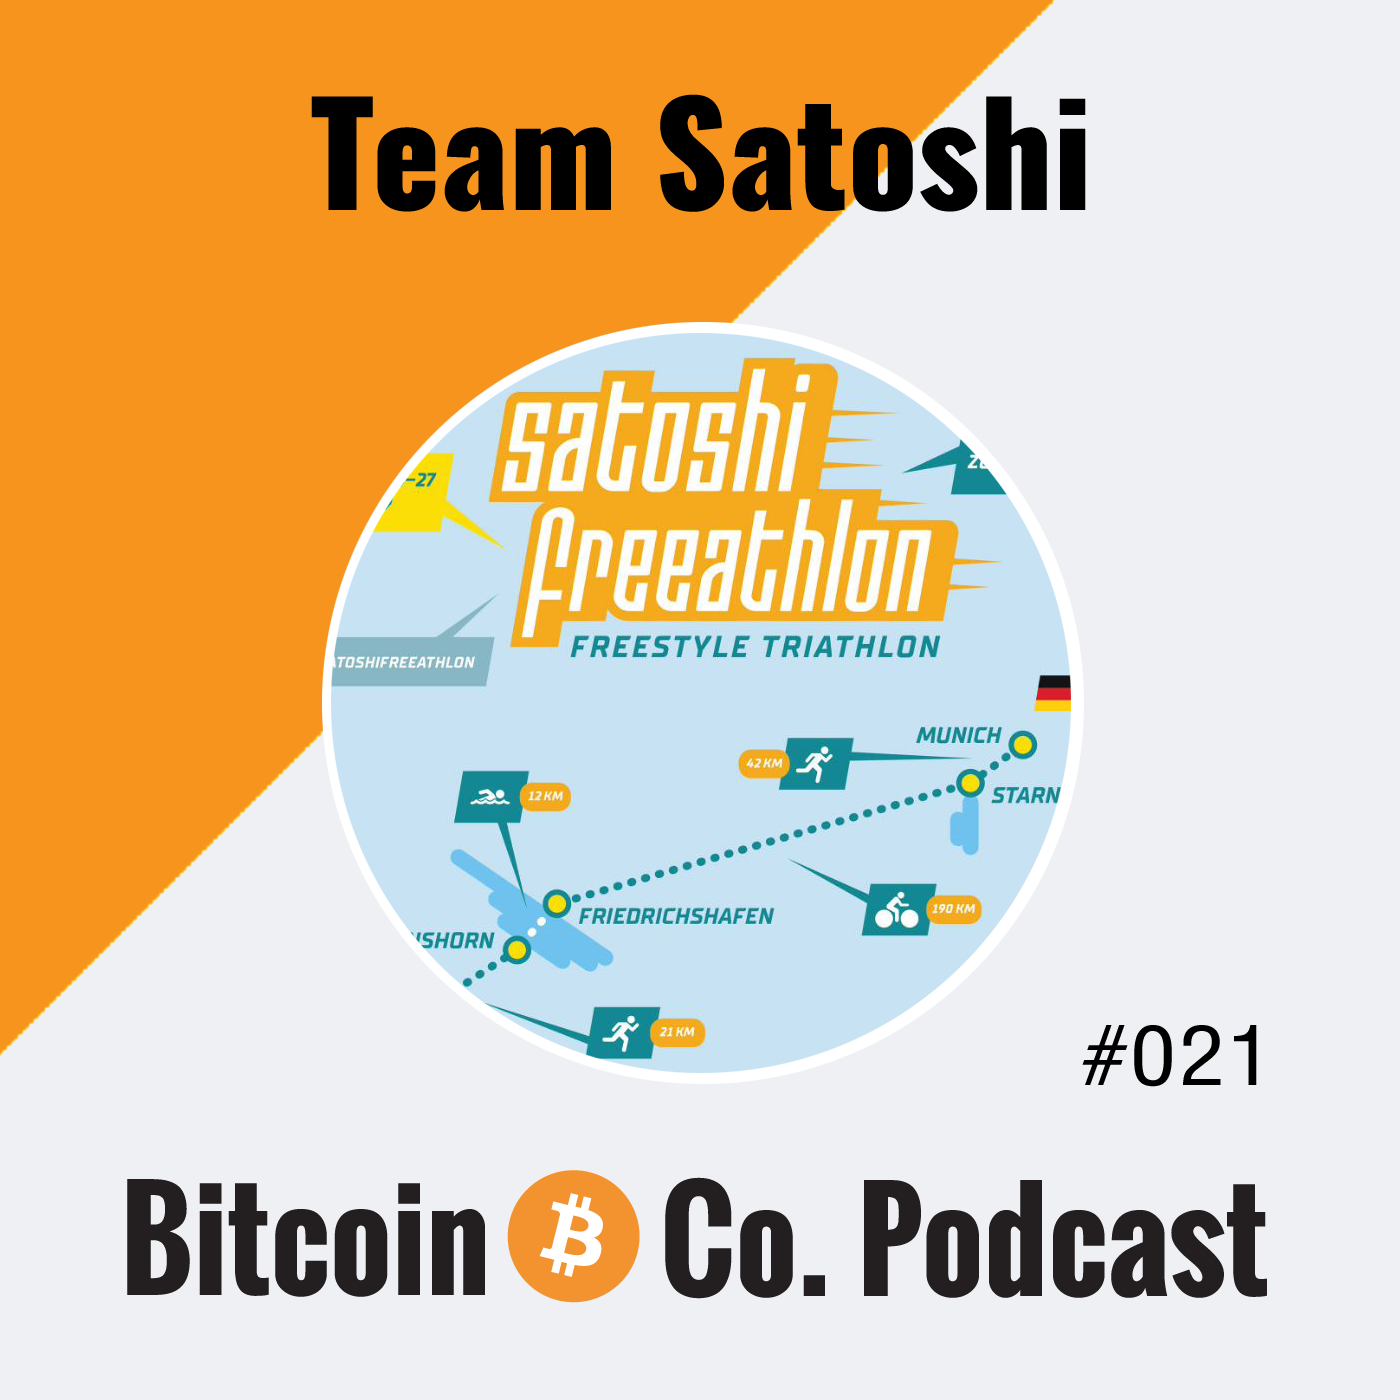 Satoshi Freeathlon a Sports Event to Raise Awareness for Bitcoin